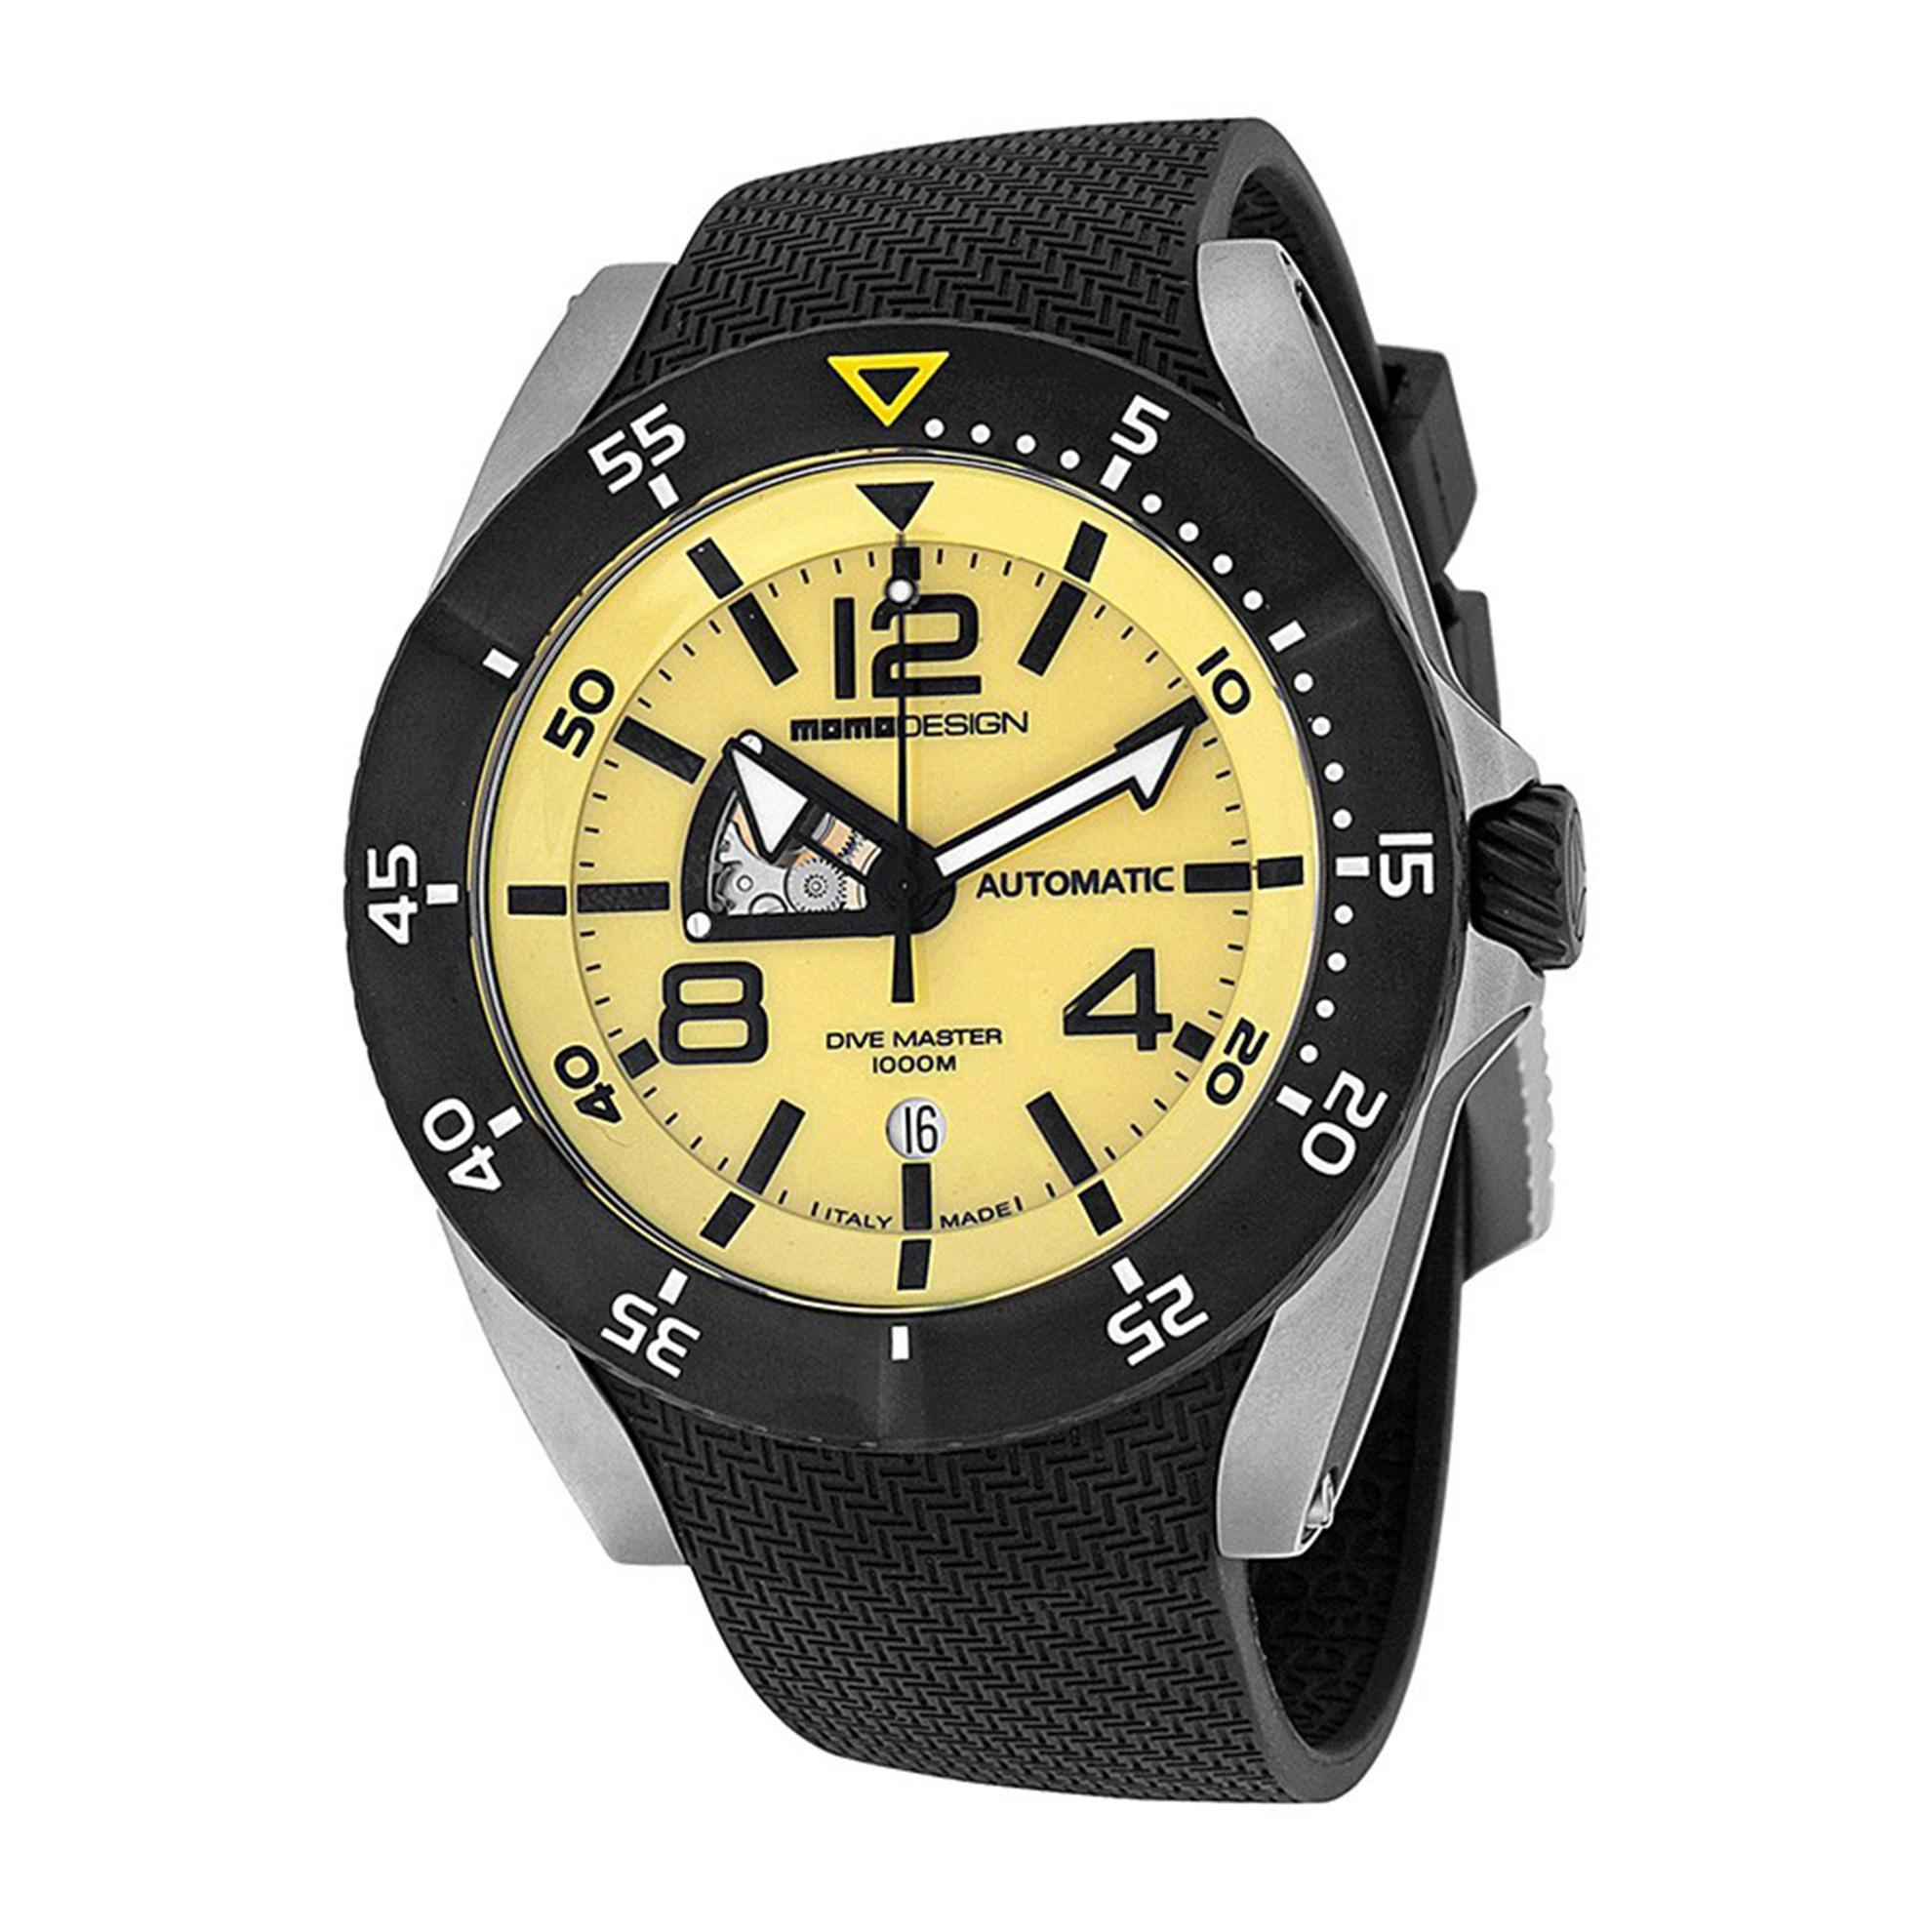 MOMO Design MD279SB21 Momo Design Dive Master Swiss Automatic Yellow Dial Rubber Strap